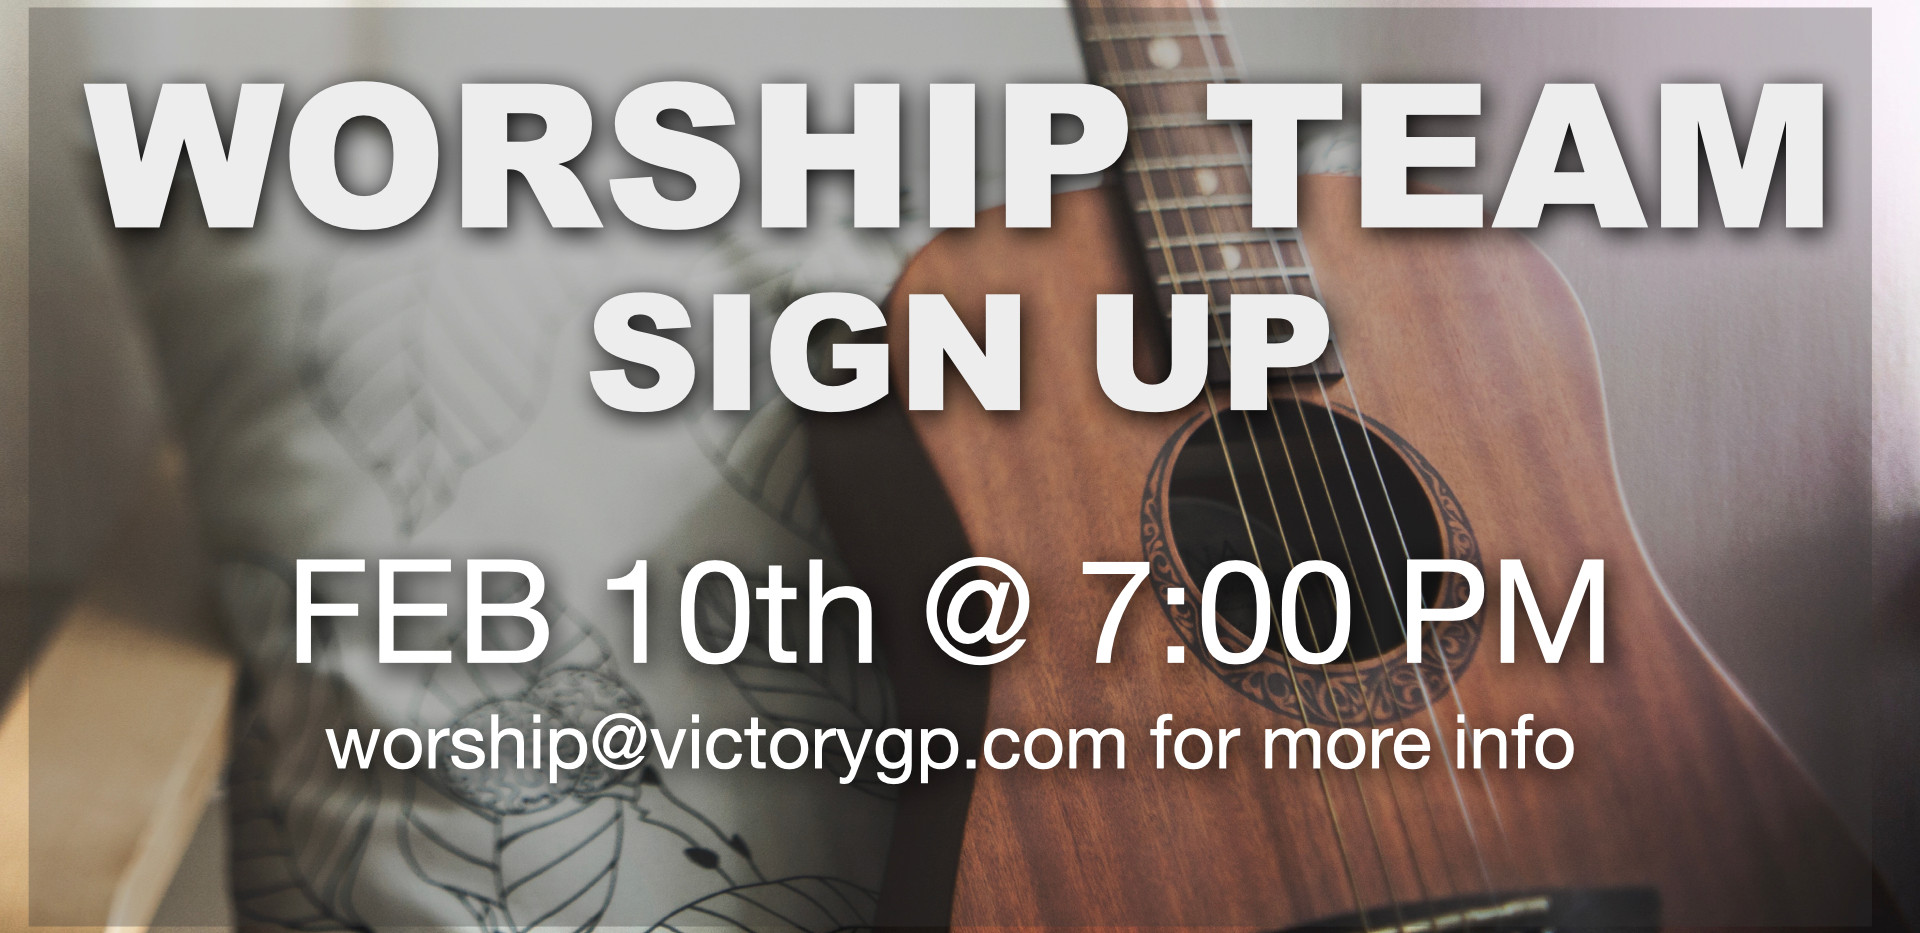 worship sign up.jpeg